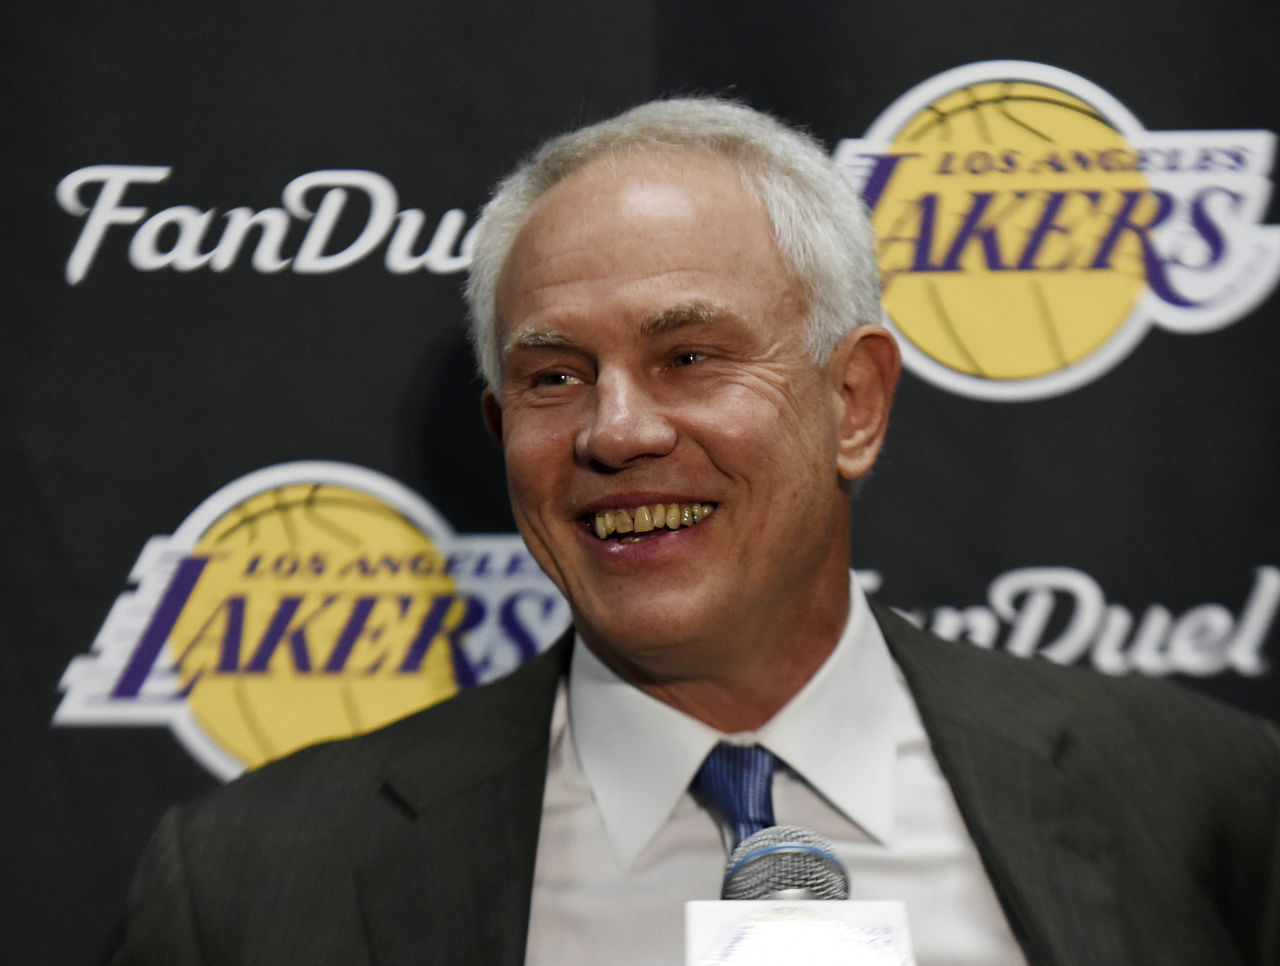 Stern Lakers still could ve traded for Chris Paul but Kupchak